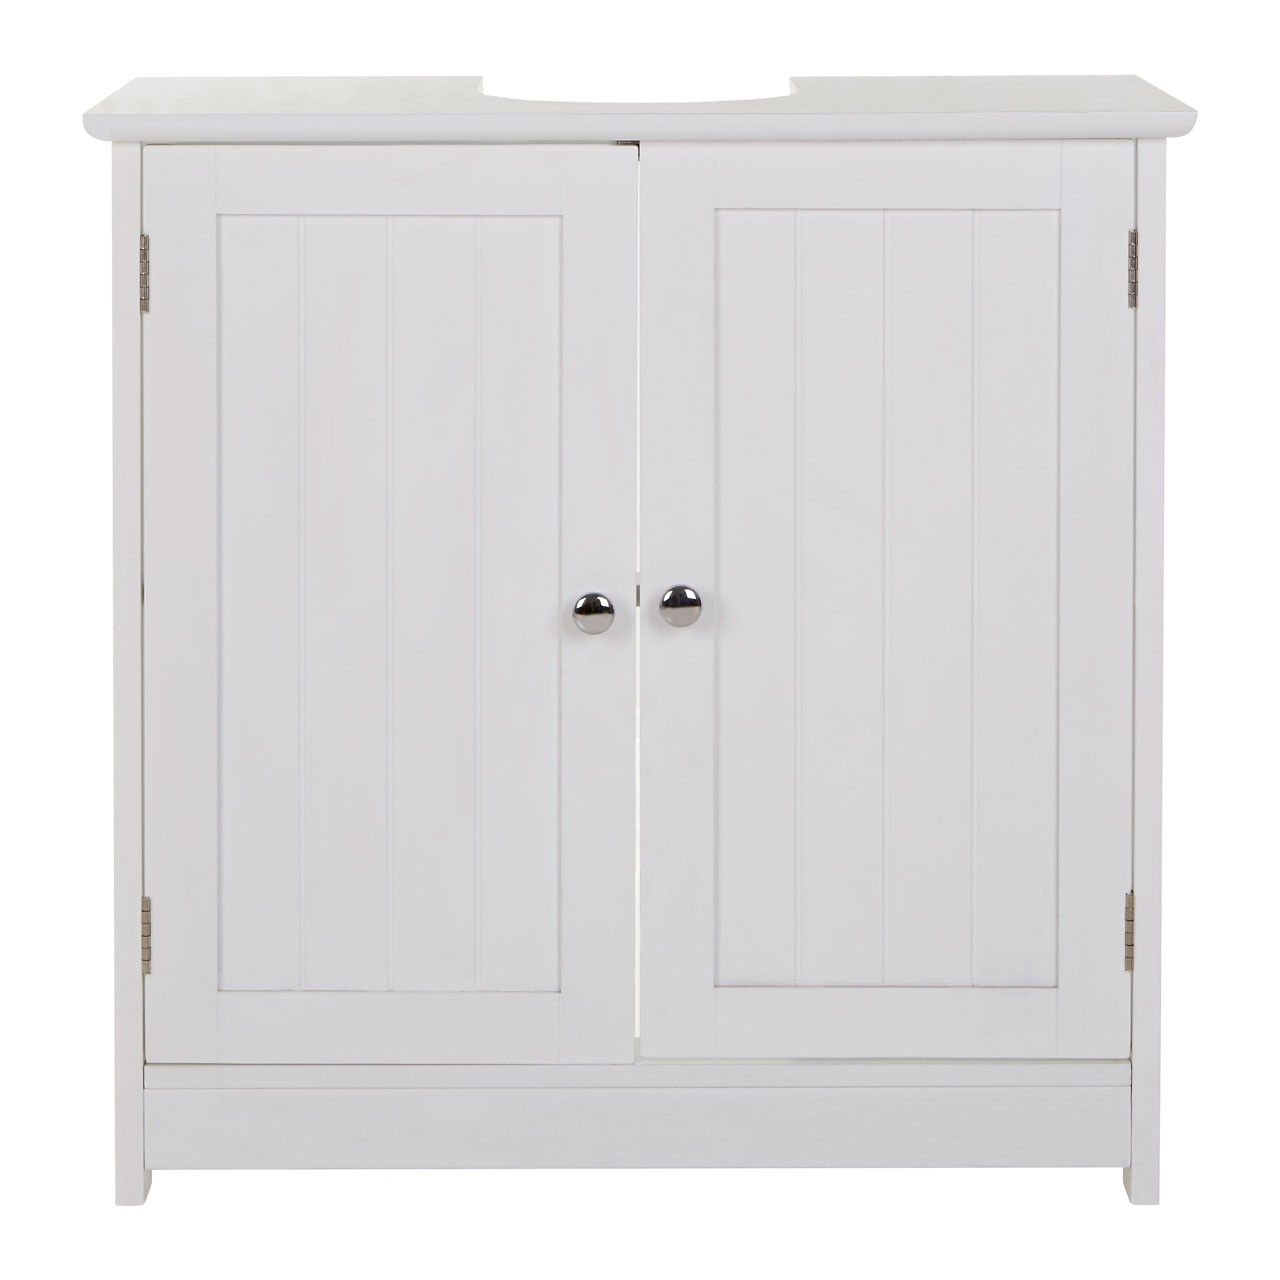 Prime Furnishing Portland Under Sink Cabinet - White